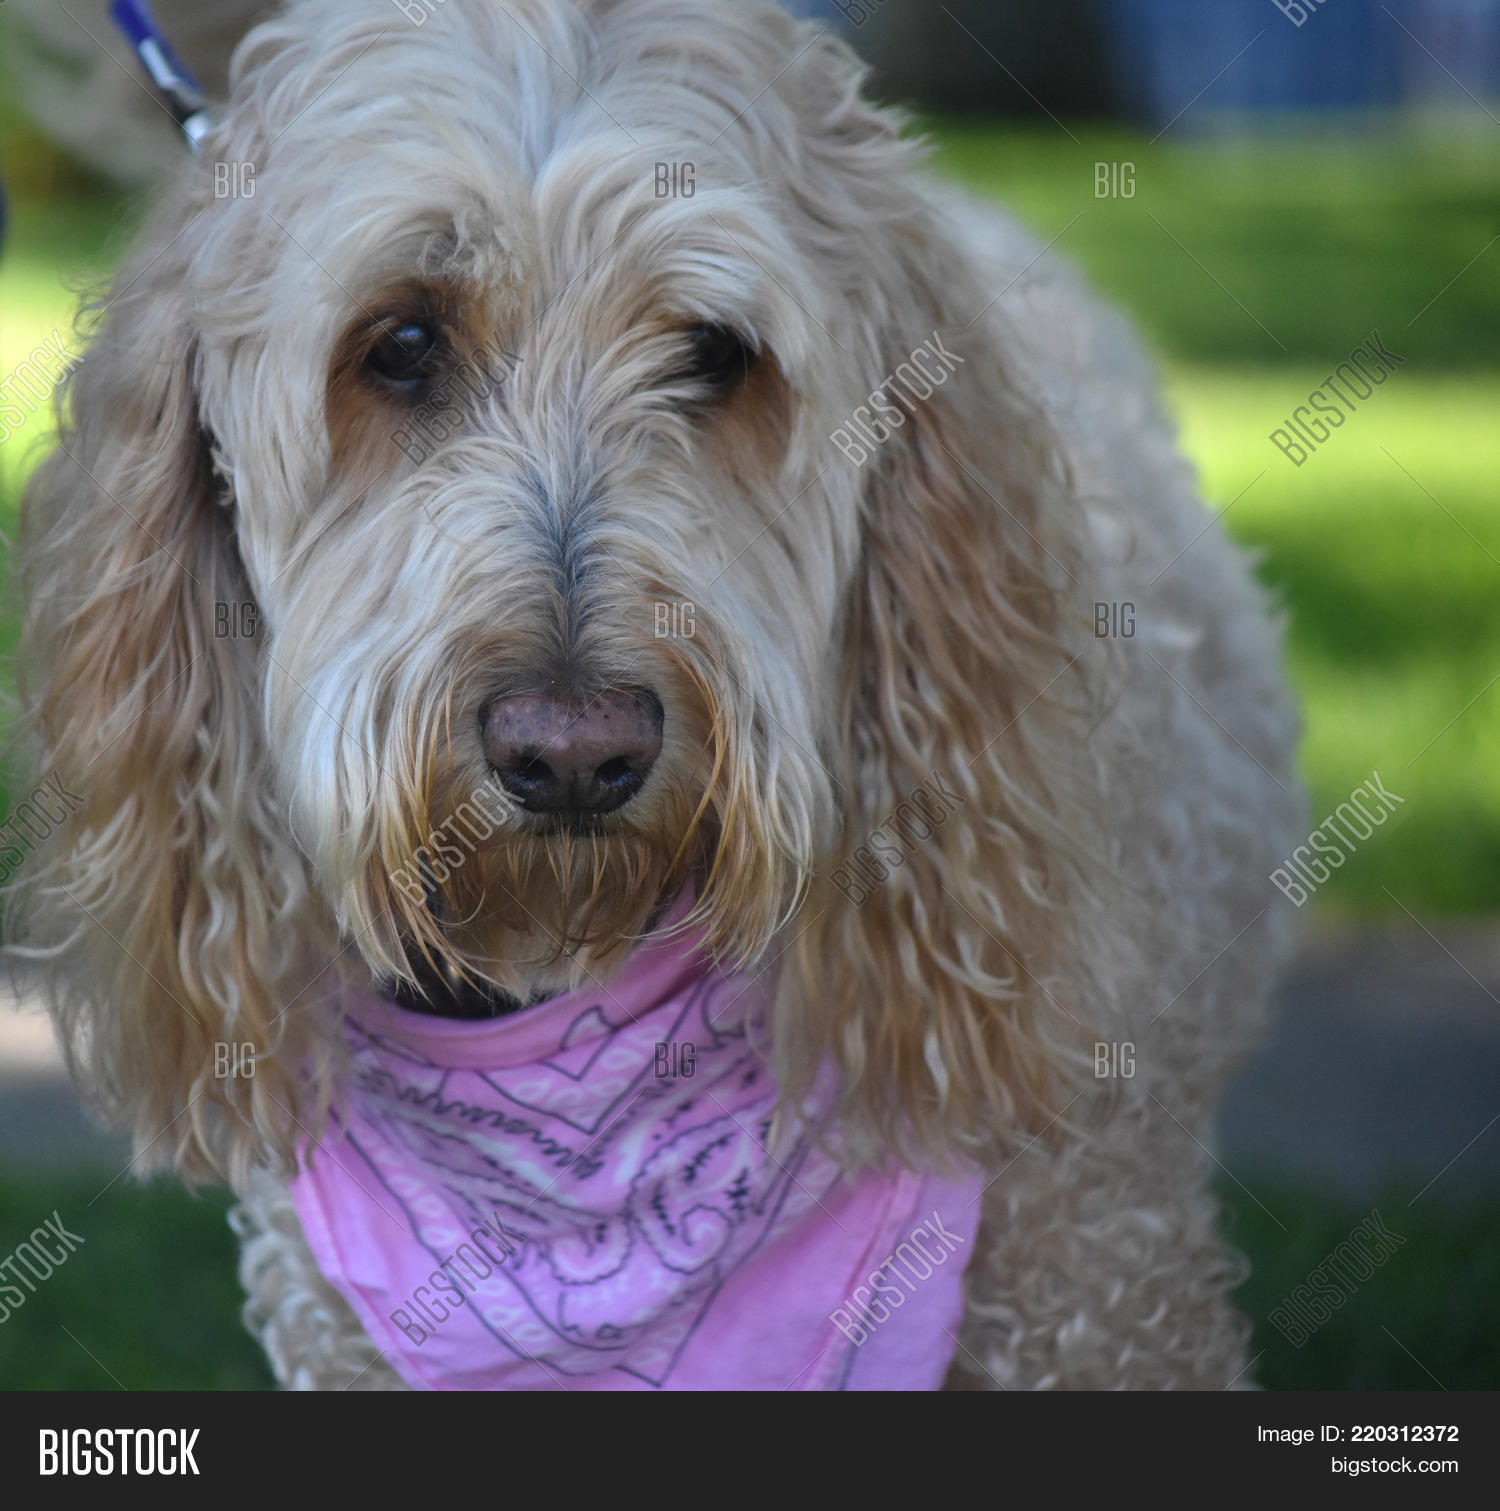 Goldendoodle Cross Image Photo Free Trial Bigstock